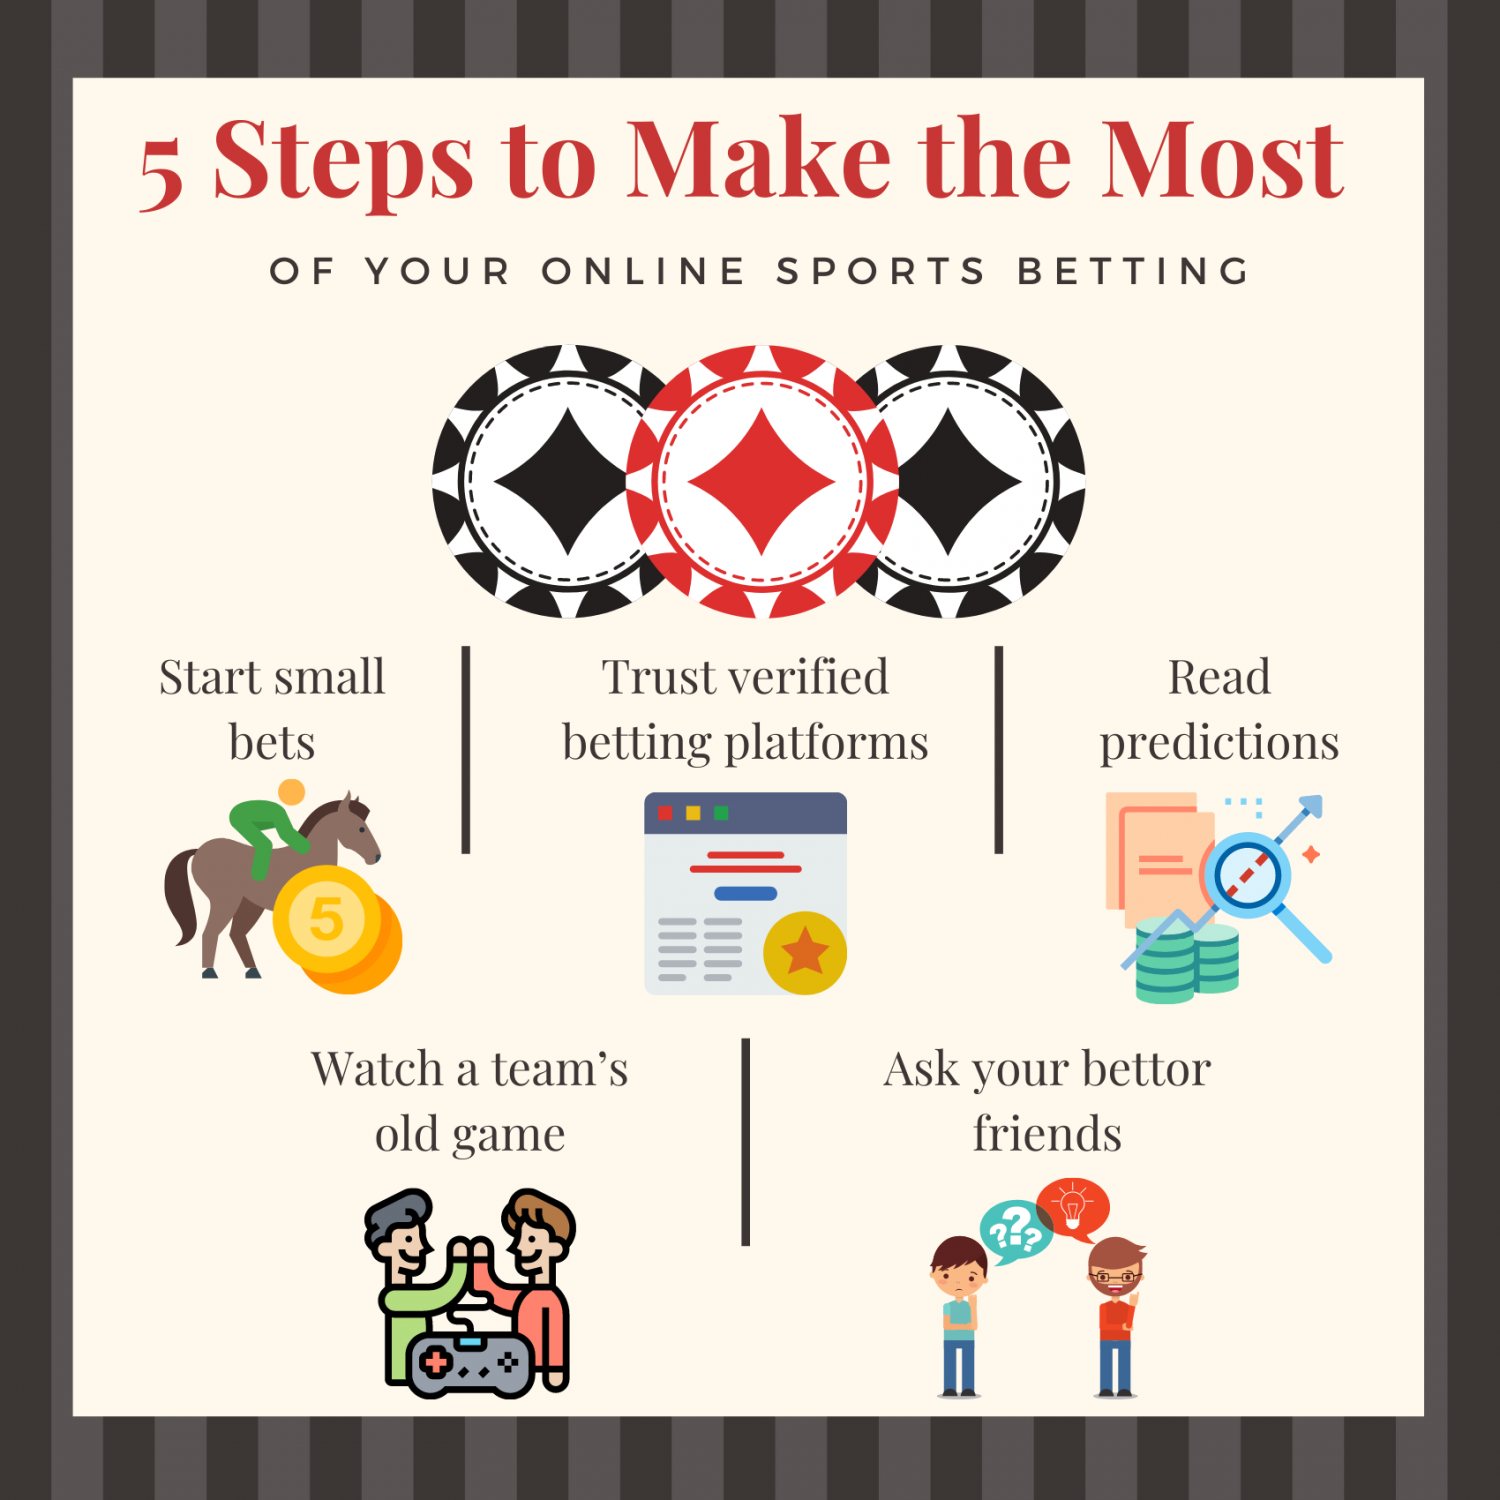 5 Steps to Make the Most of Your Online Sports Betting Infographic